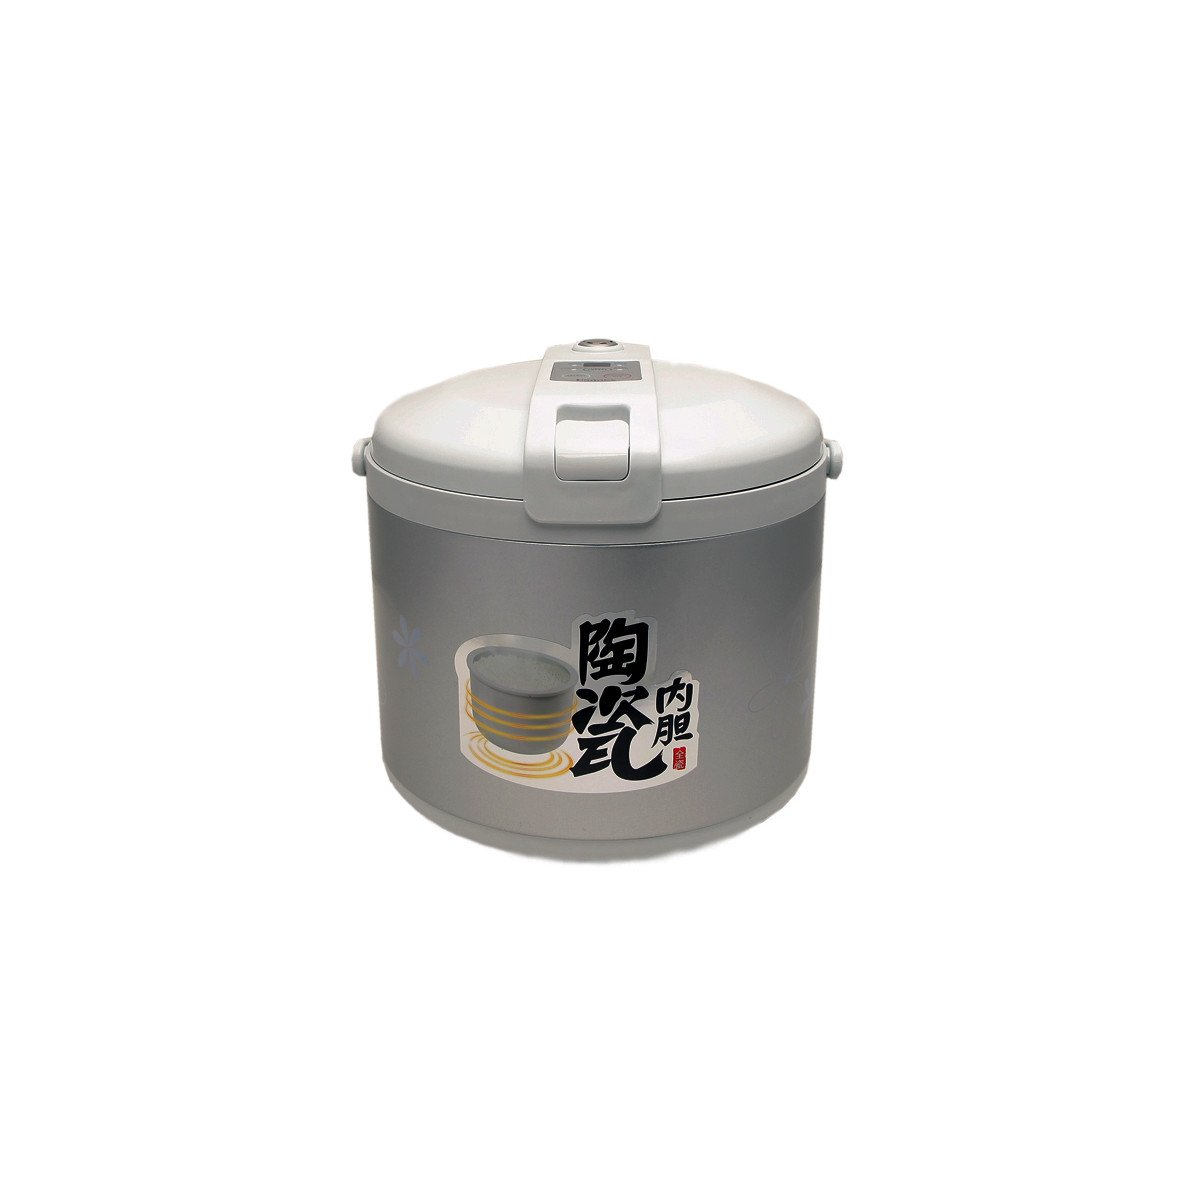 Hannex Rice Cooker, Silver And White Finish, 6 cups